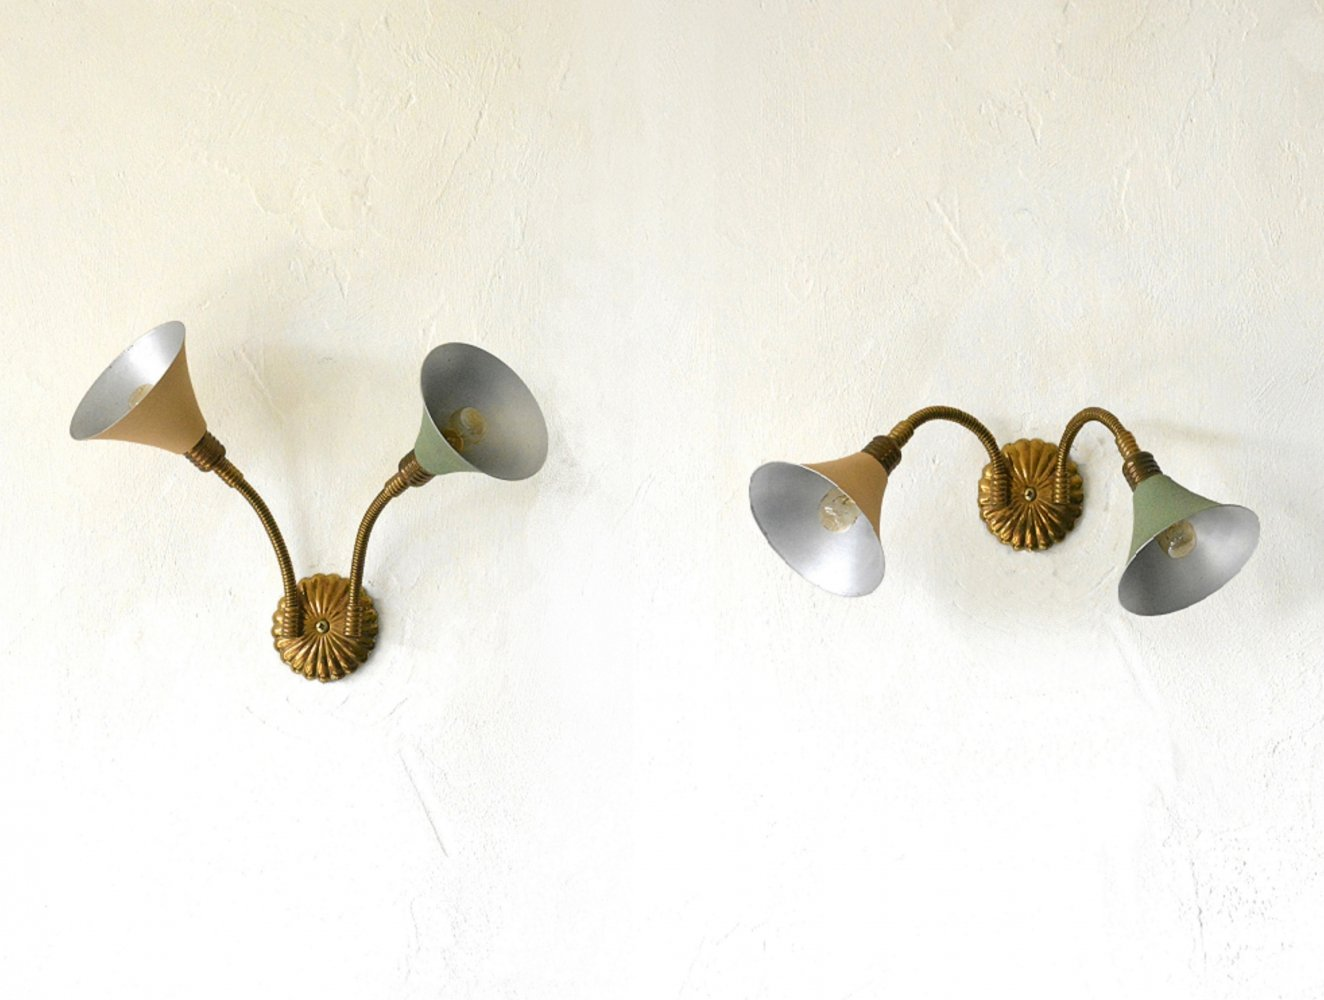 Rare pair of Italian wall lights, 1950s